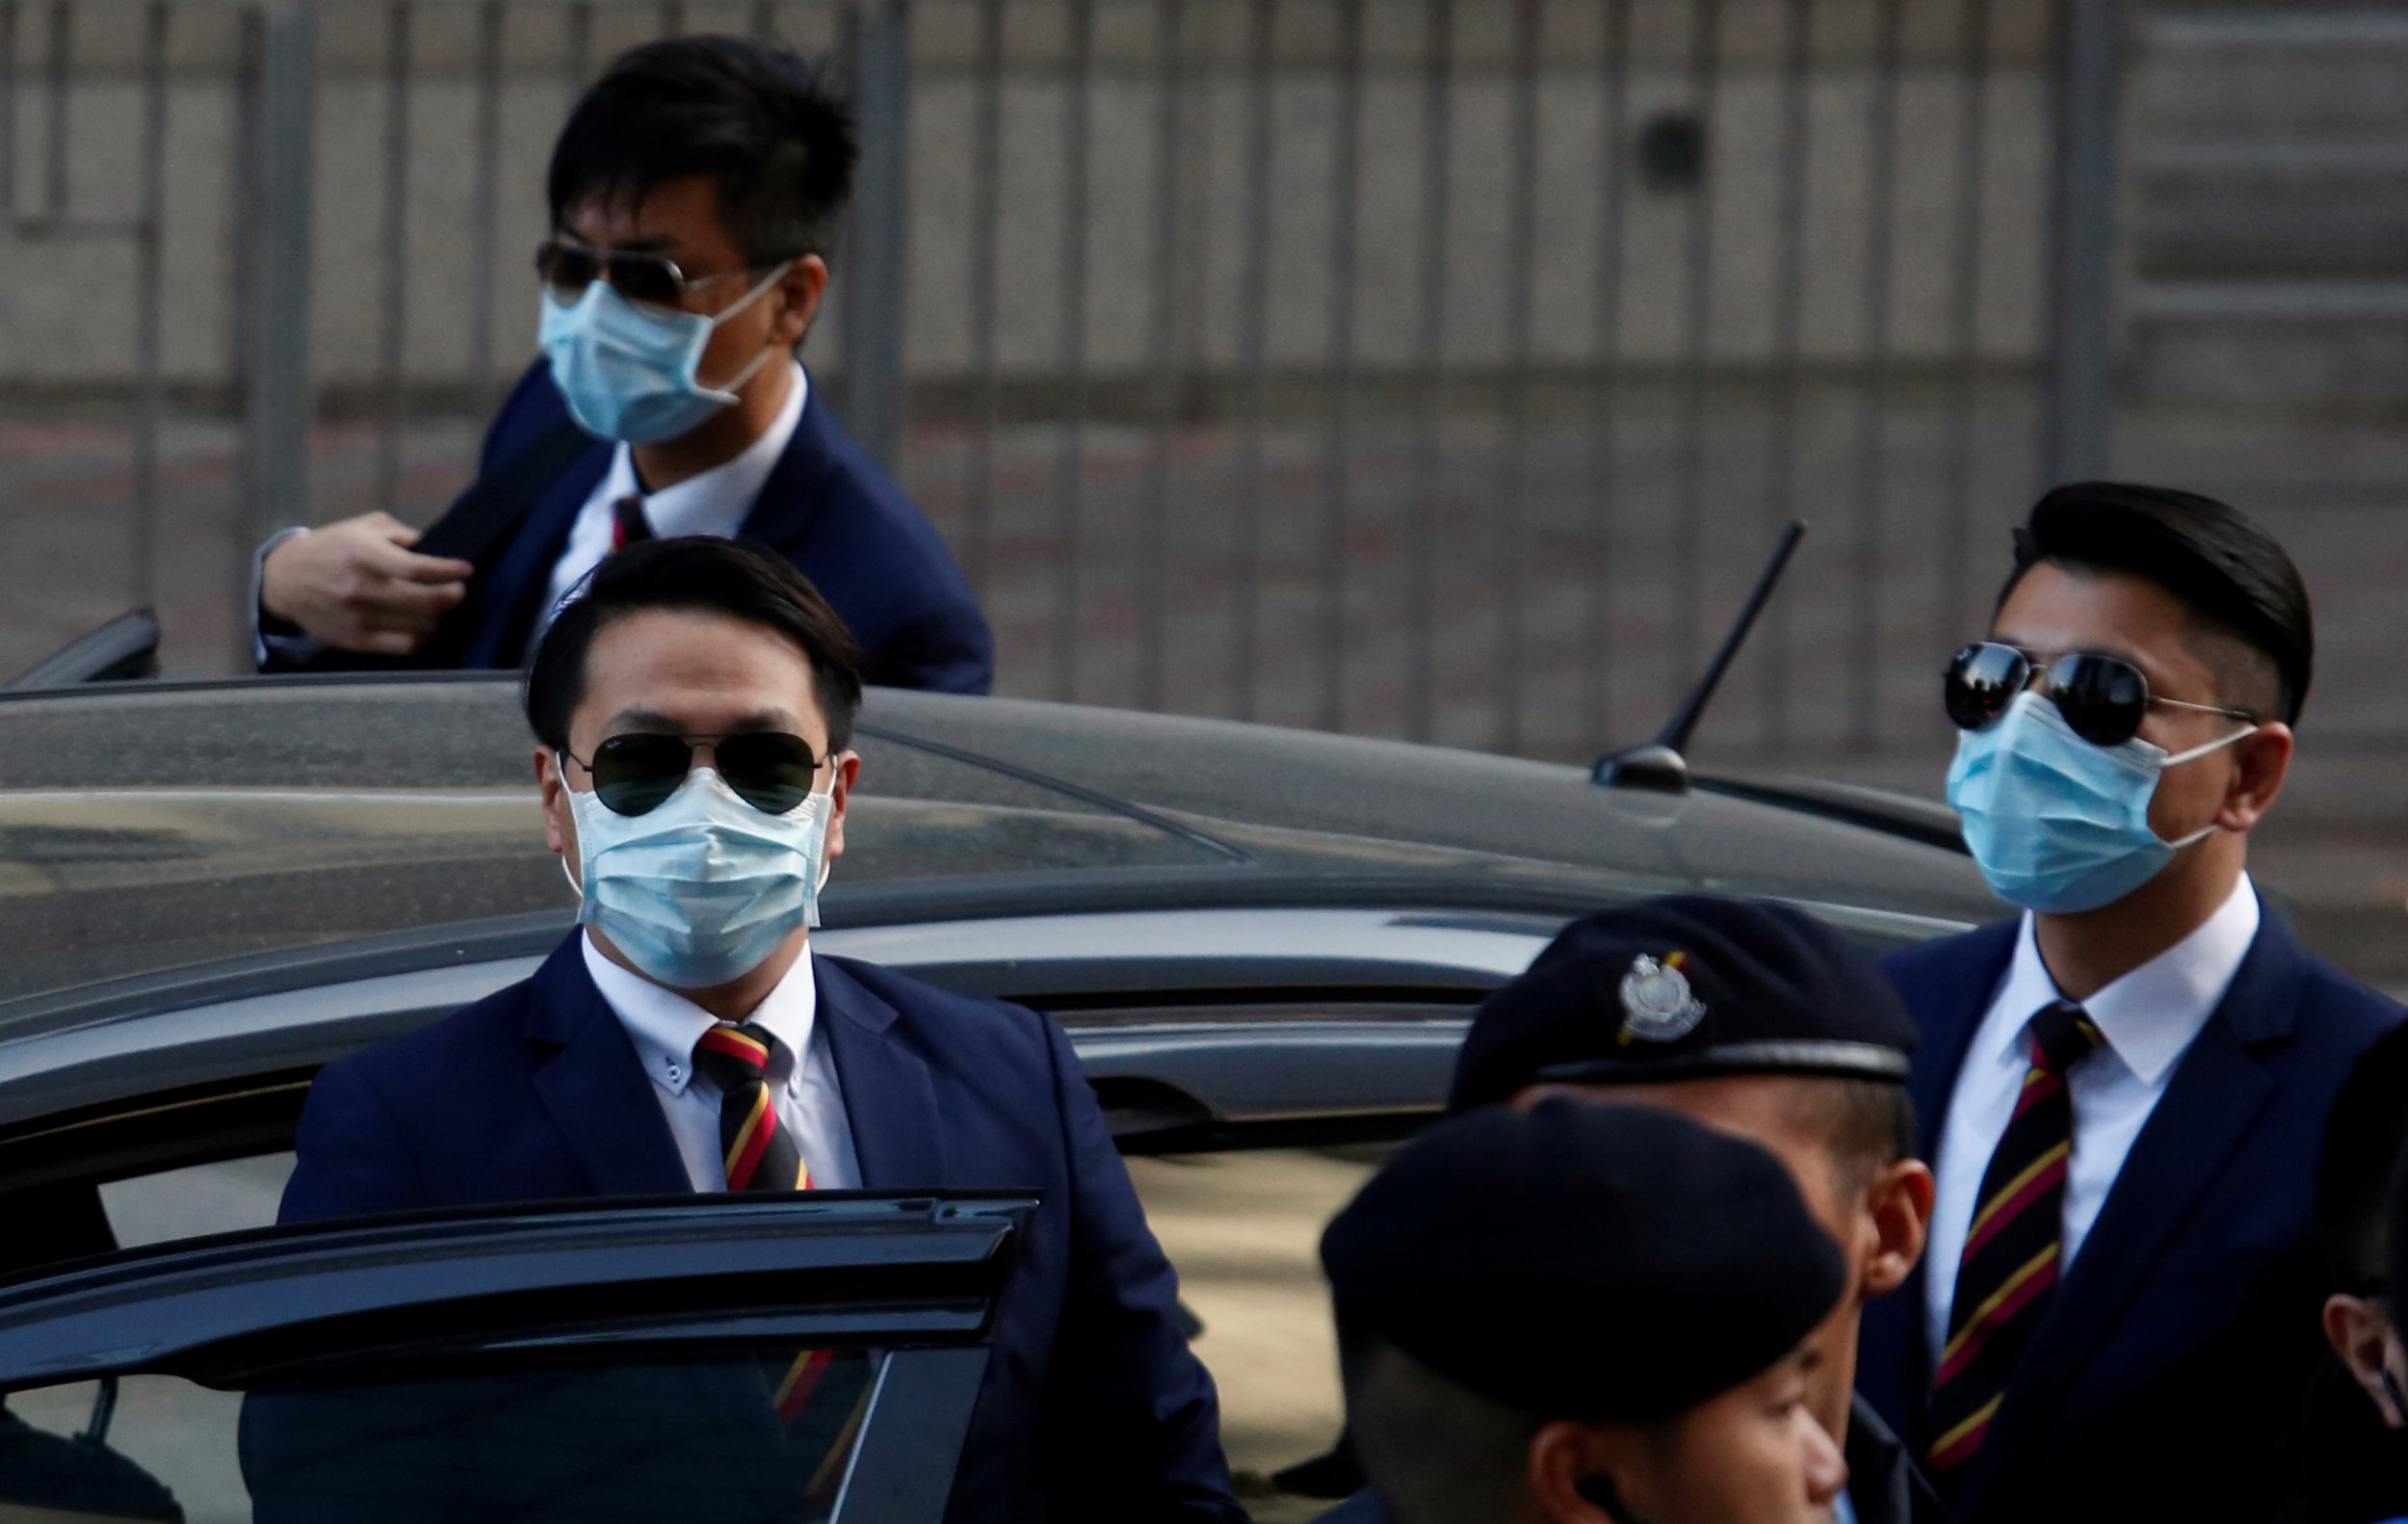 Police are sentenced in Hong kong